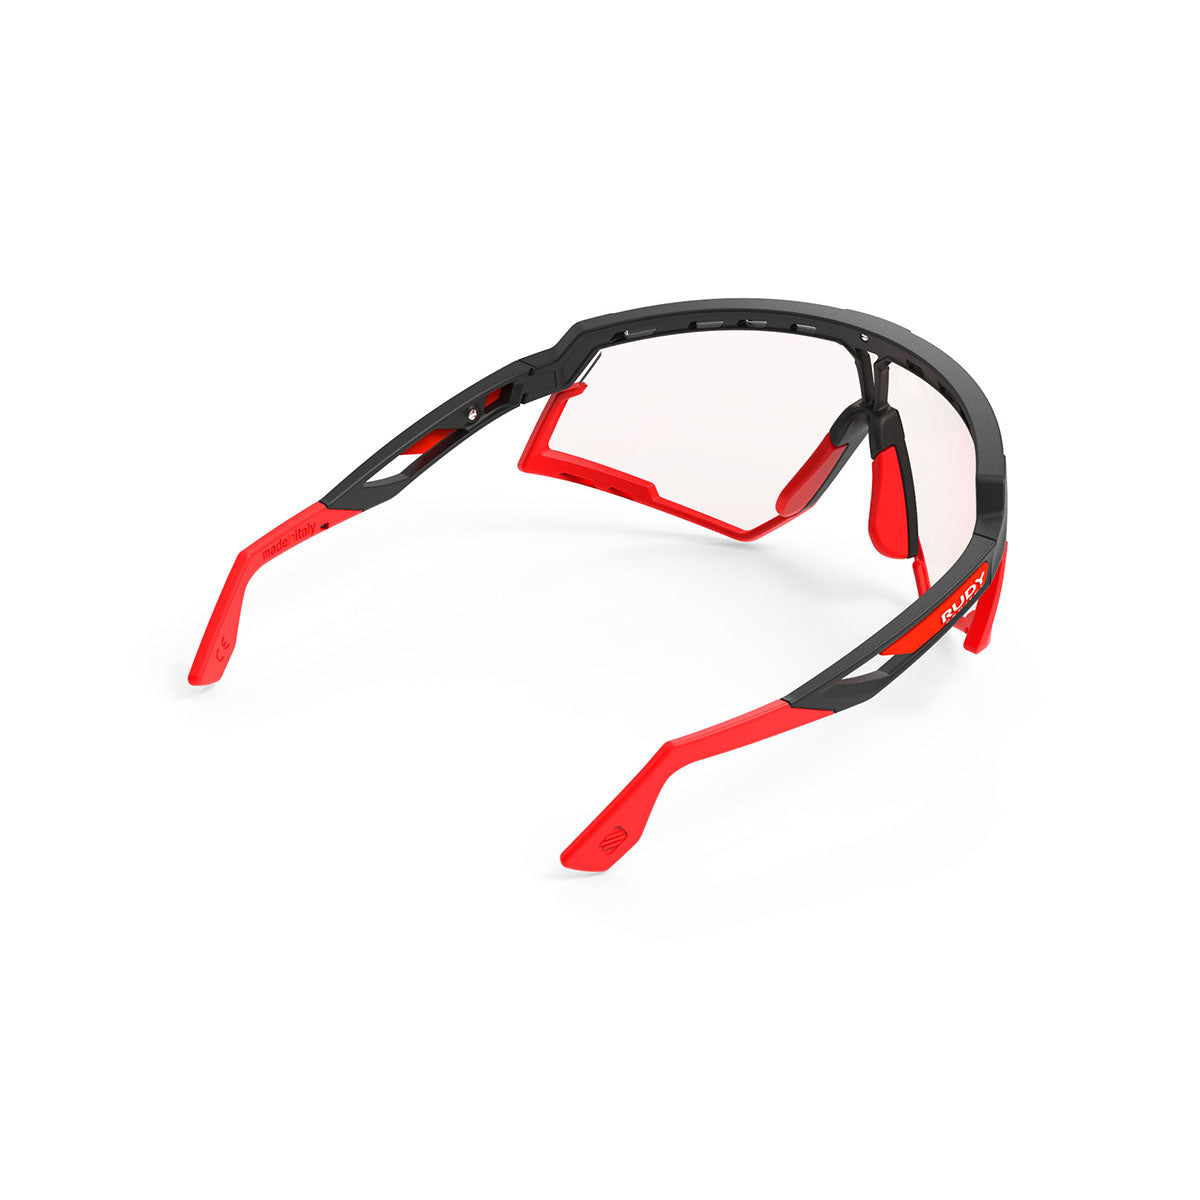 Rudy Project - Defender - frame color: Matte Black - lens color: ImpactX-2 Photochromic Clear to Red - Bumper Color: Red - photo angle: Top Back Angle Variant Hover Image